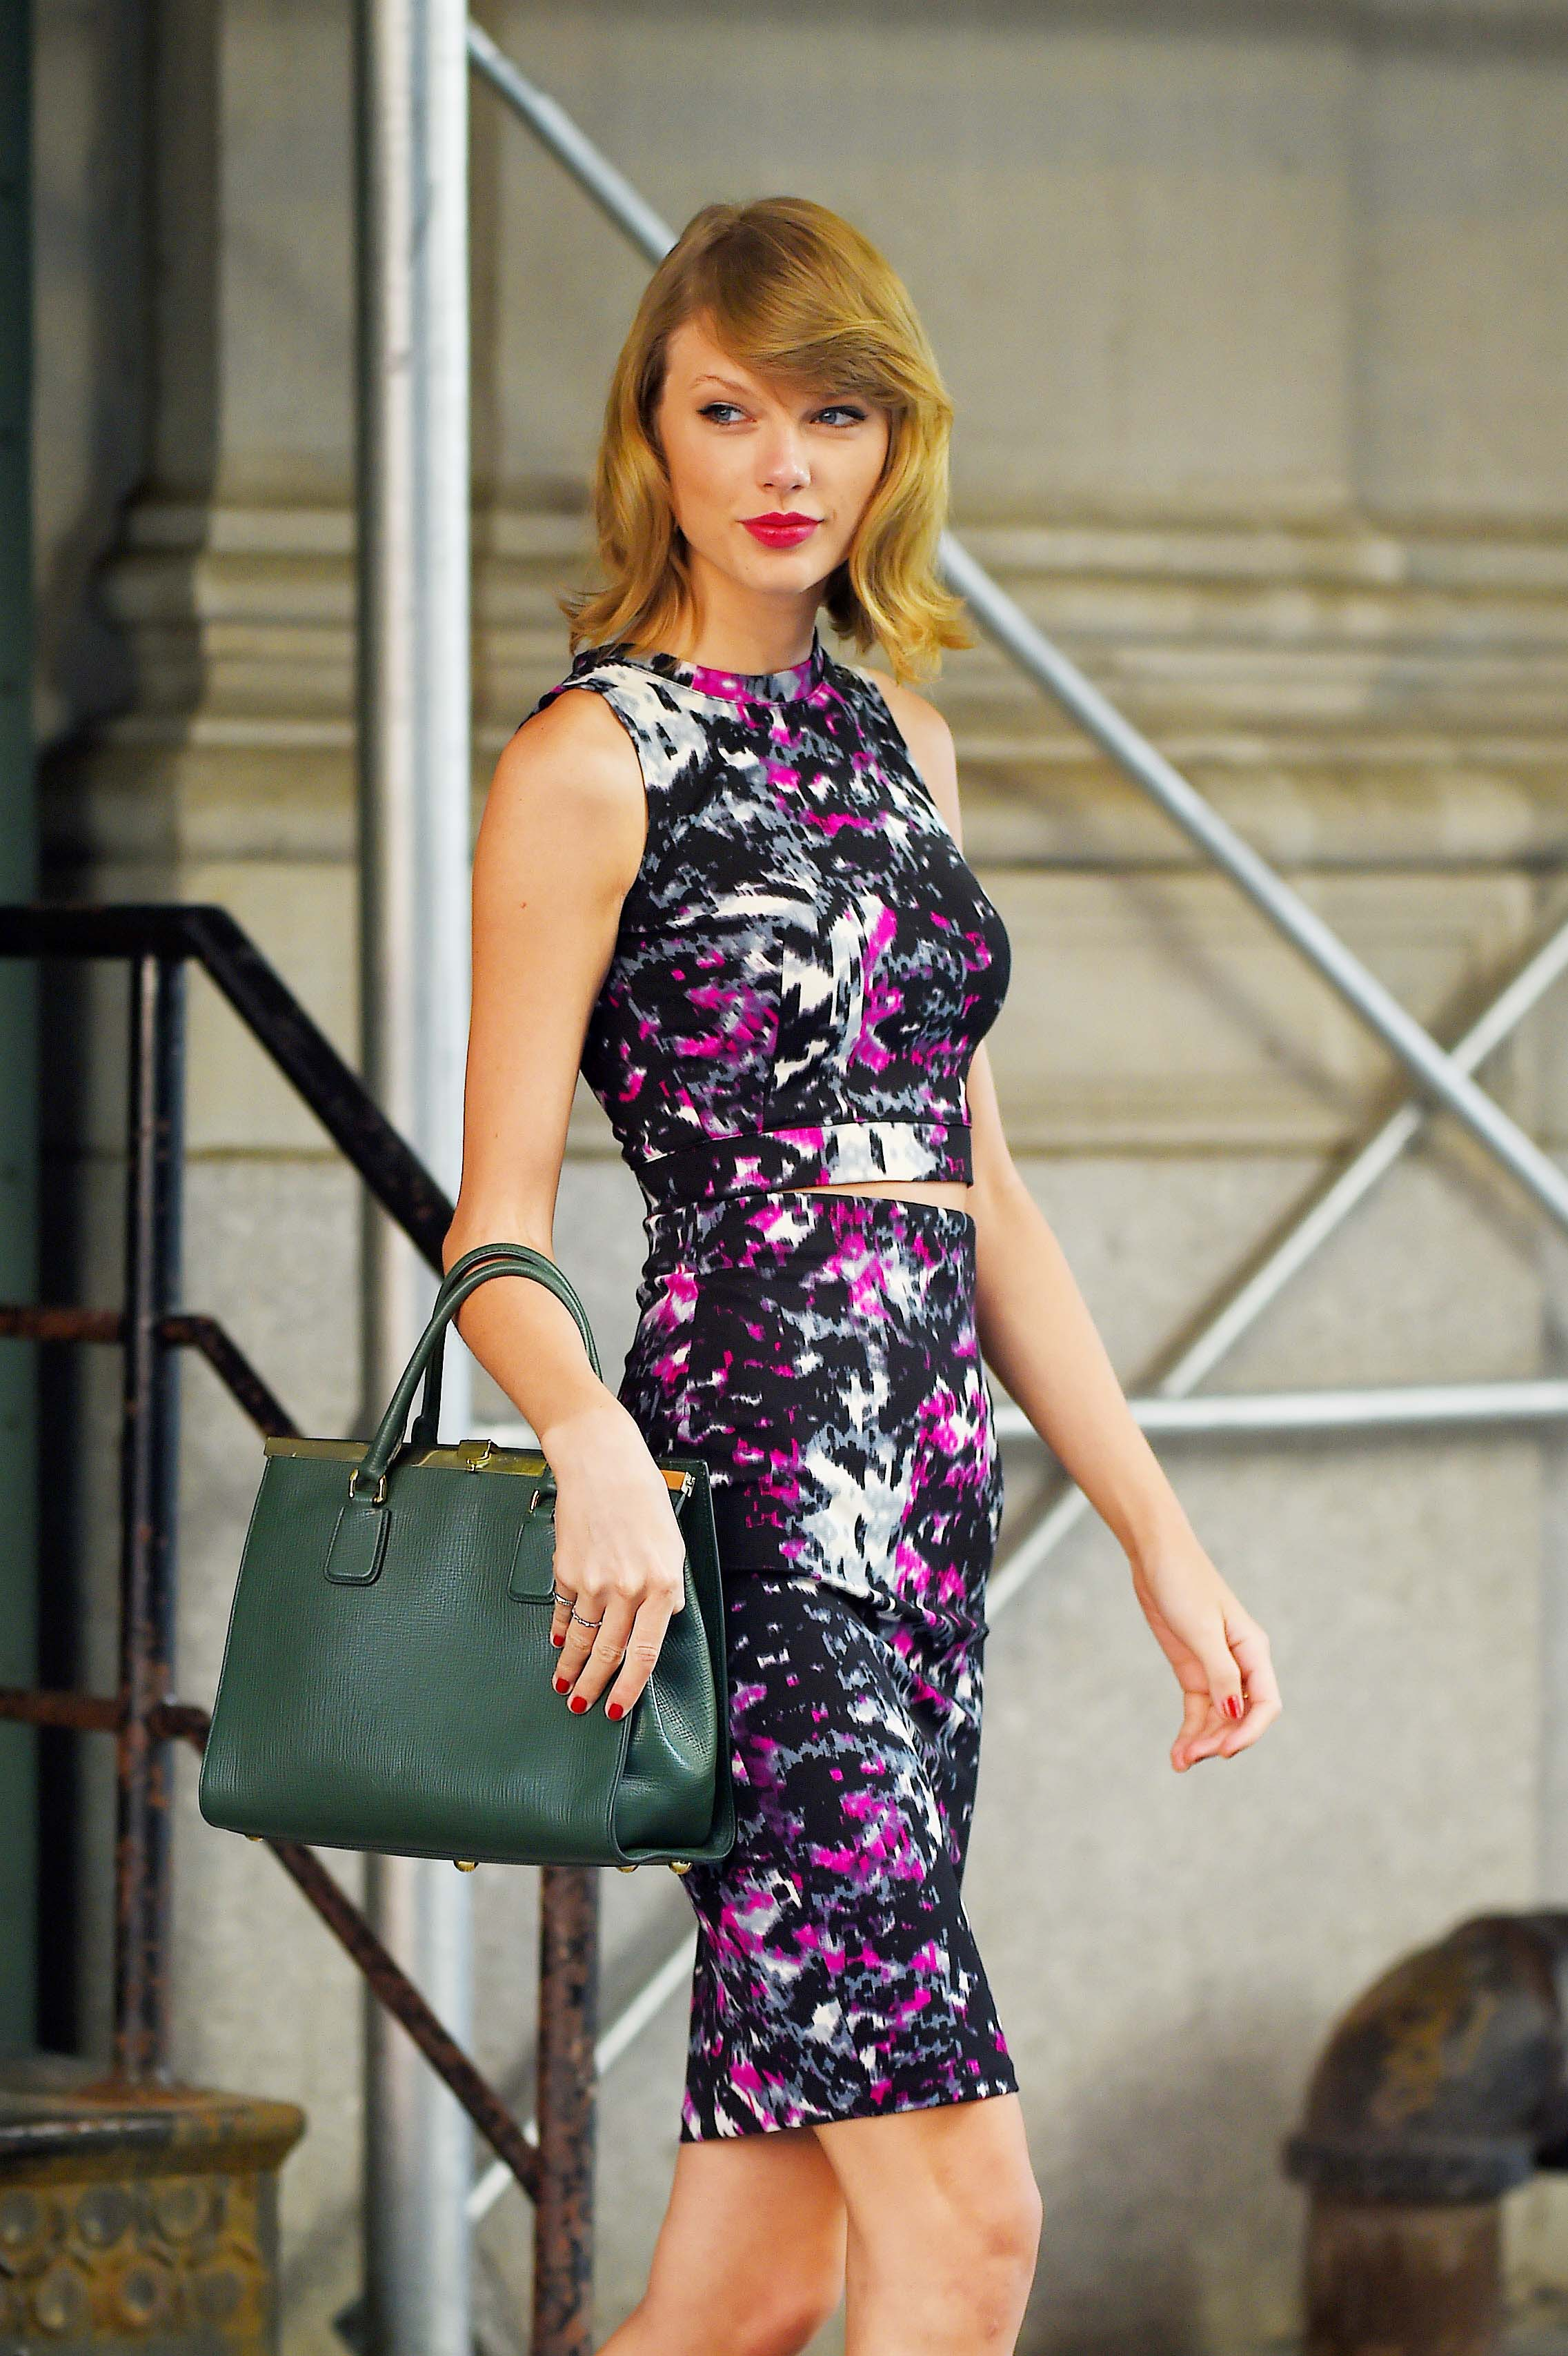 Taylor Swift on Sept. 15, 2014 in New York City